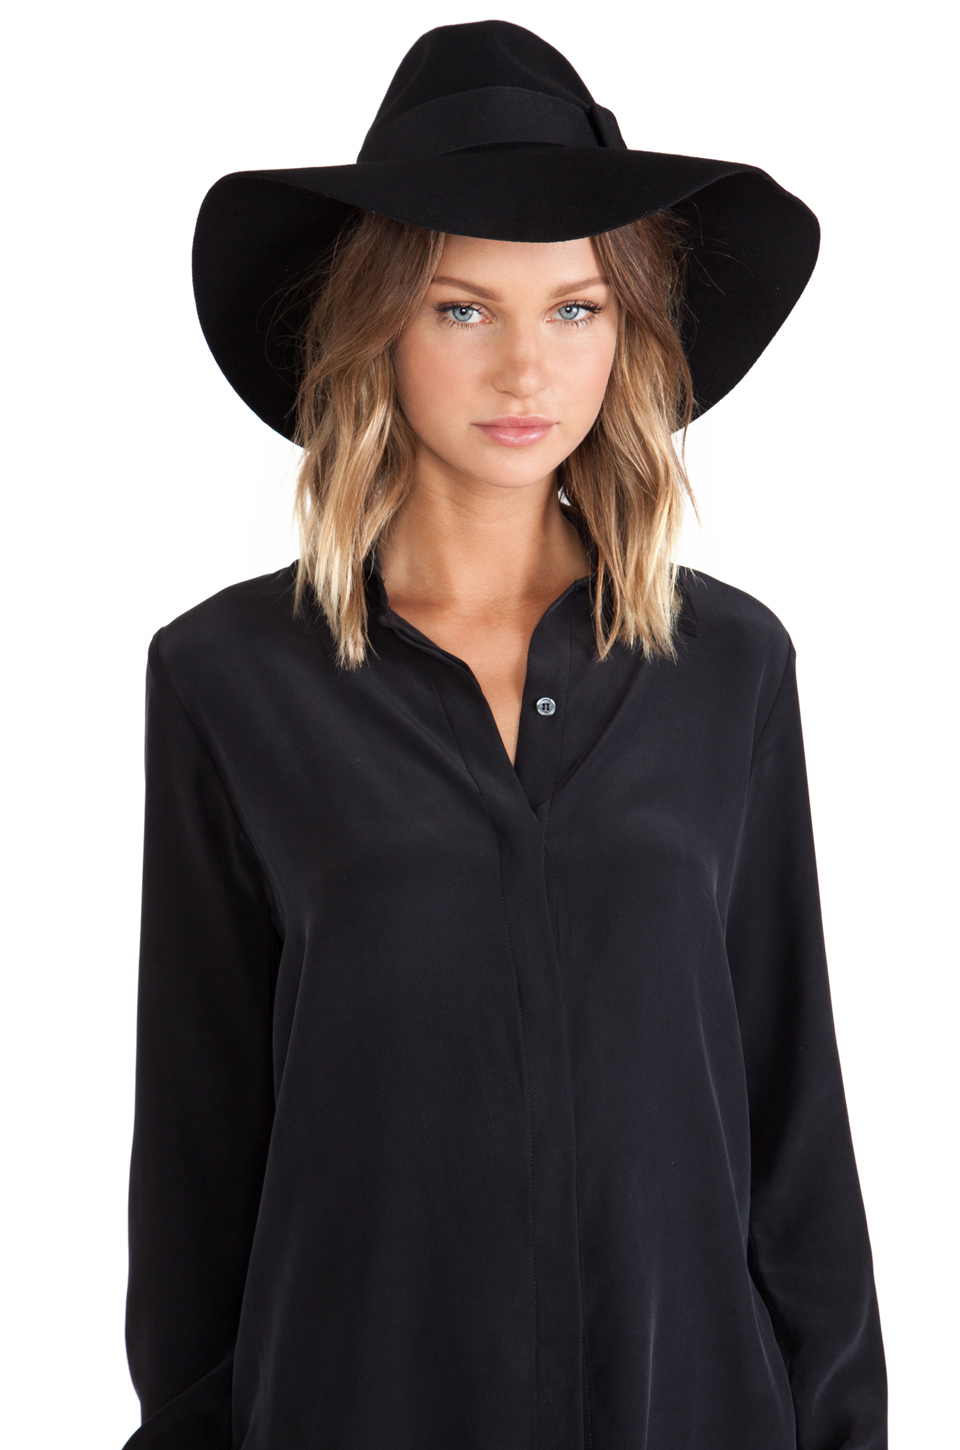 Brixton piper hat in black from revolveclothing.com